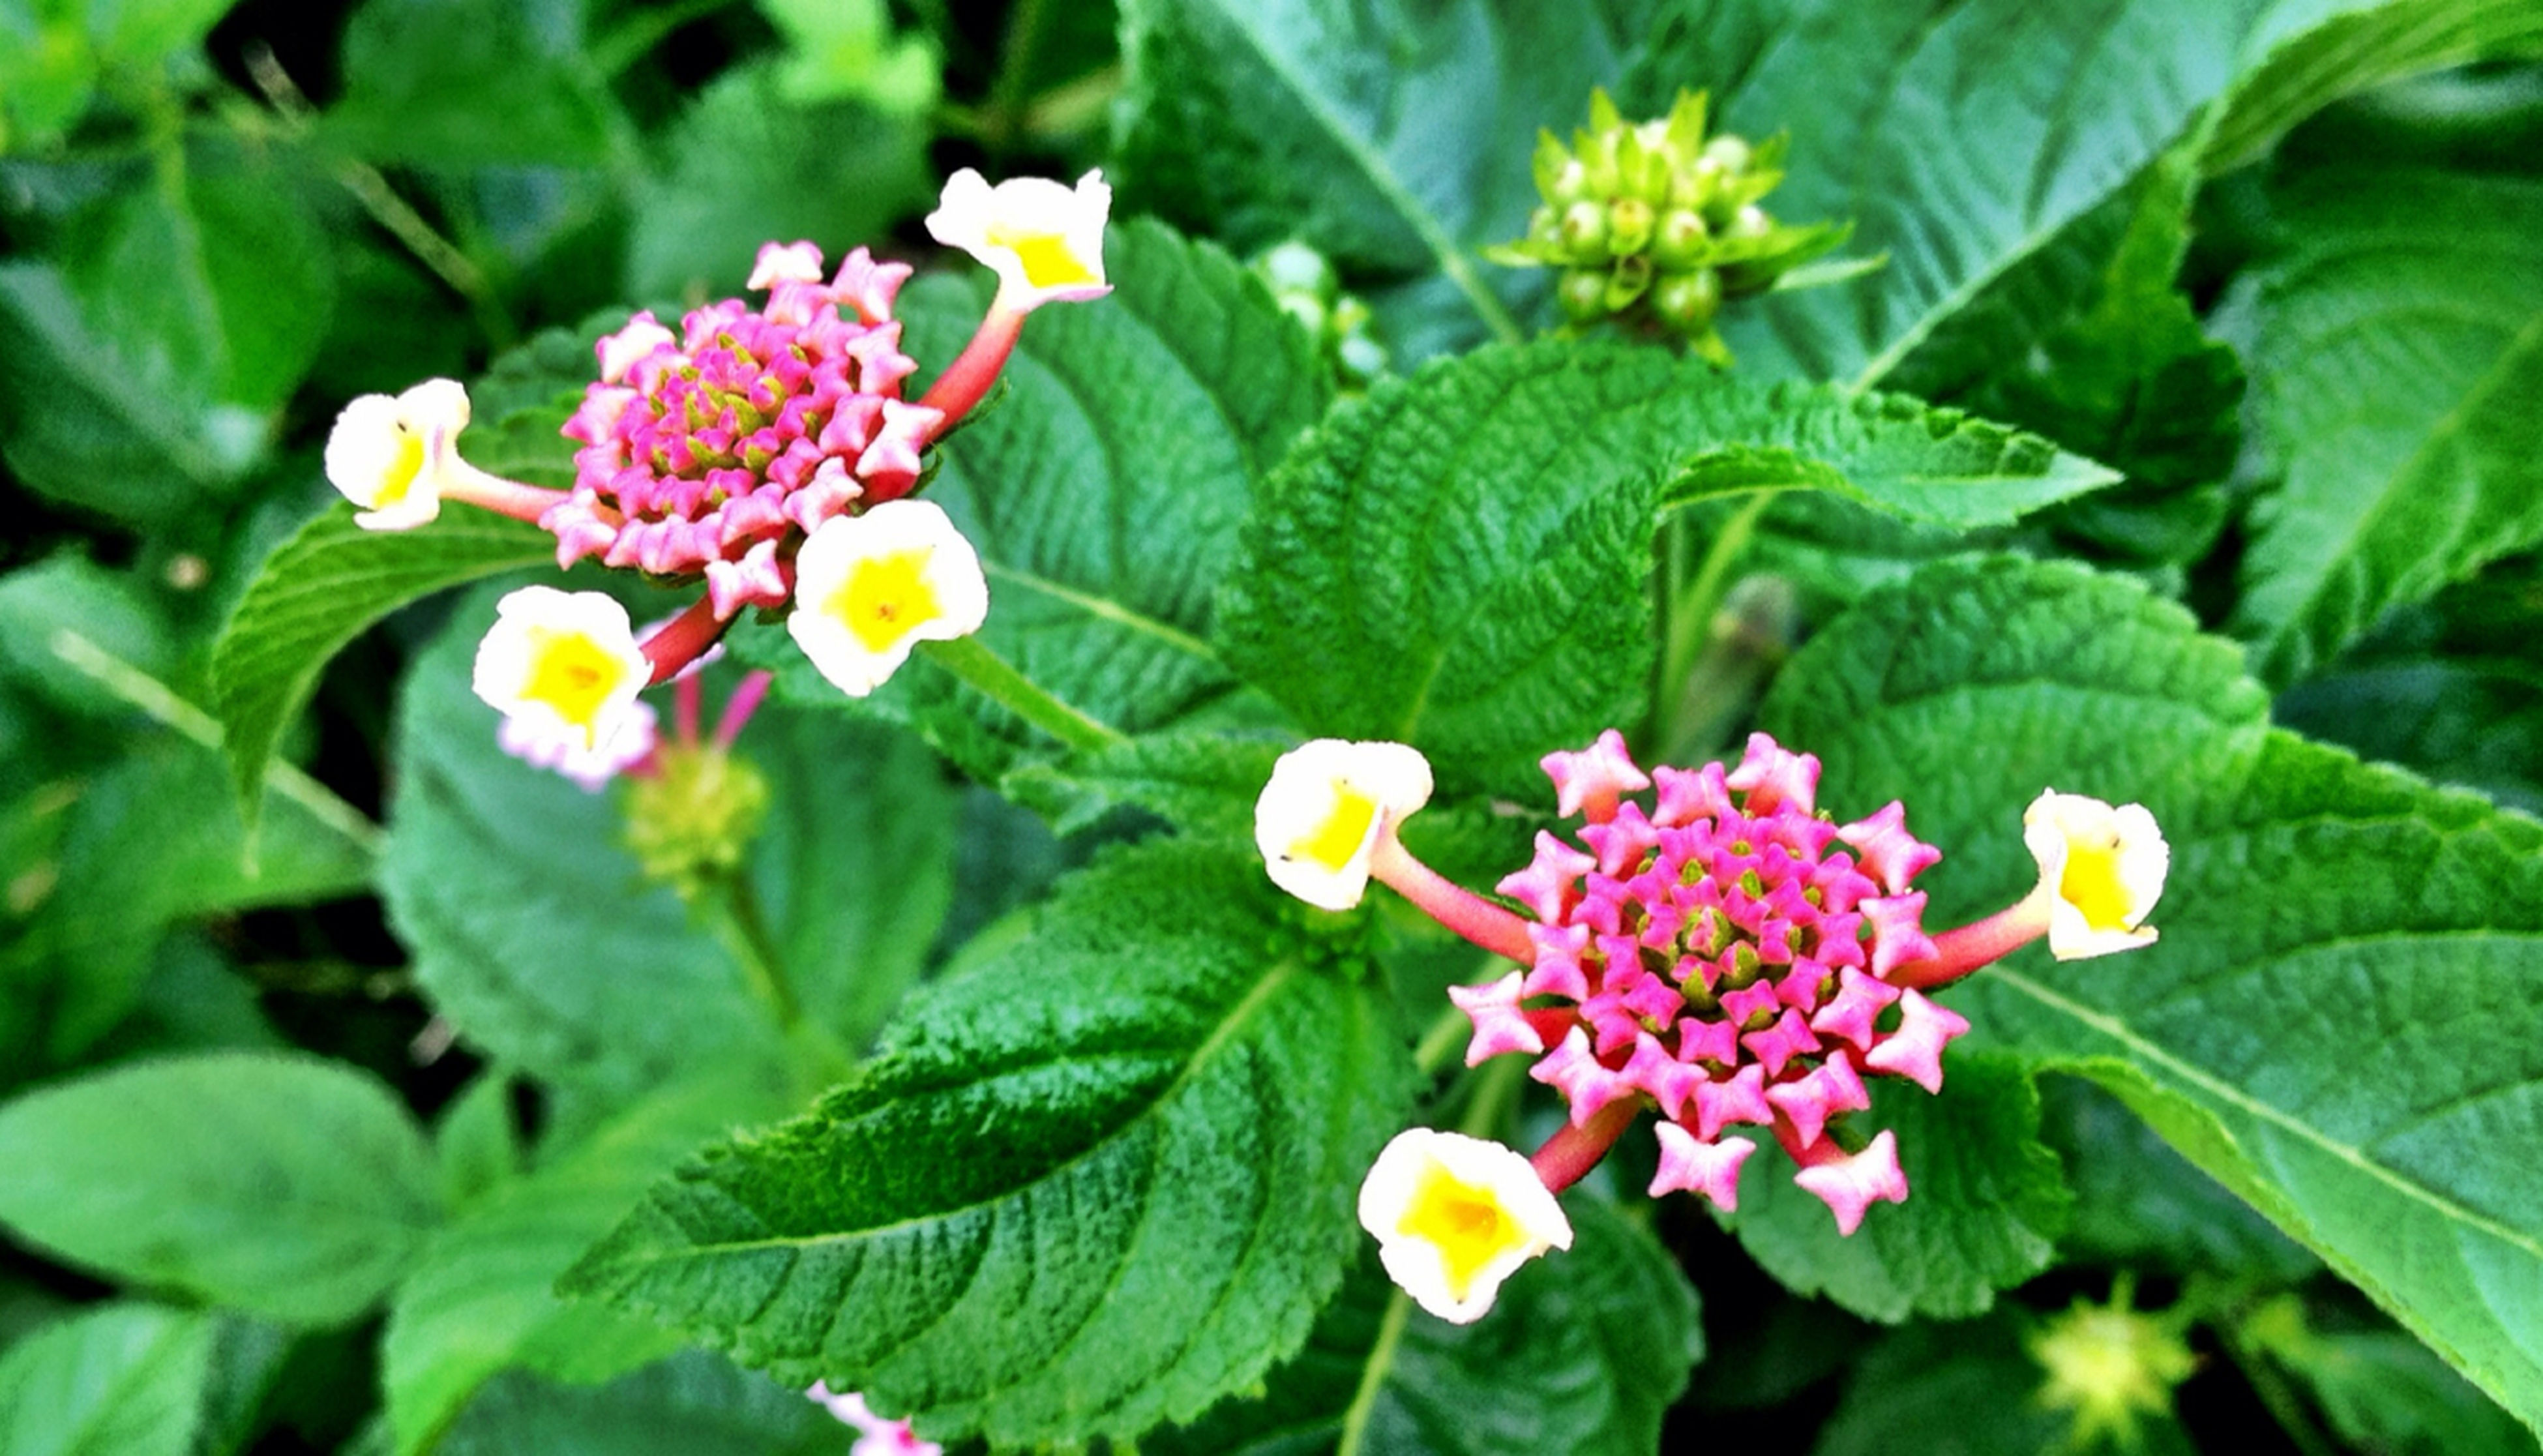 flower, freshness, leaf, growth, petal, fragility, beauty in nature, green color, flower head, plant, yellow, blooming, nature, close-up, bud, focus on foreground, in bloom, blossom, day, outdoors